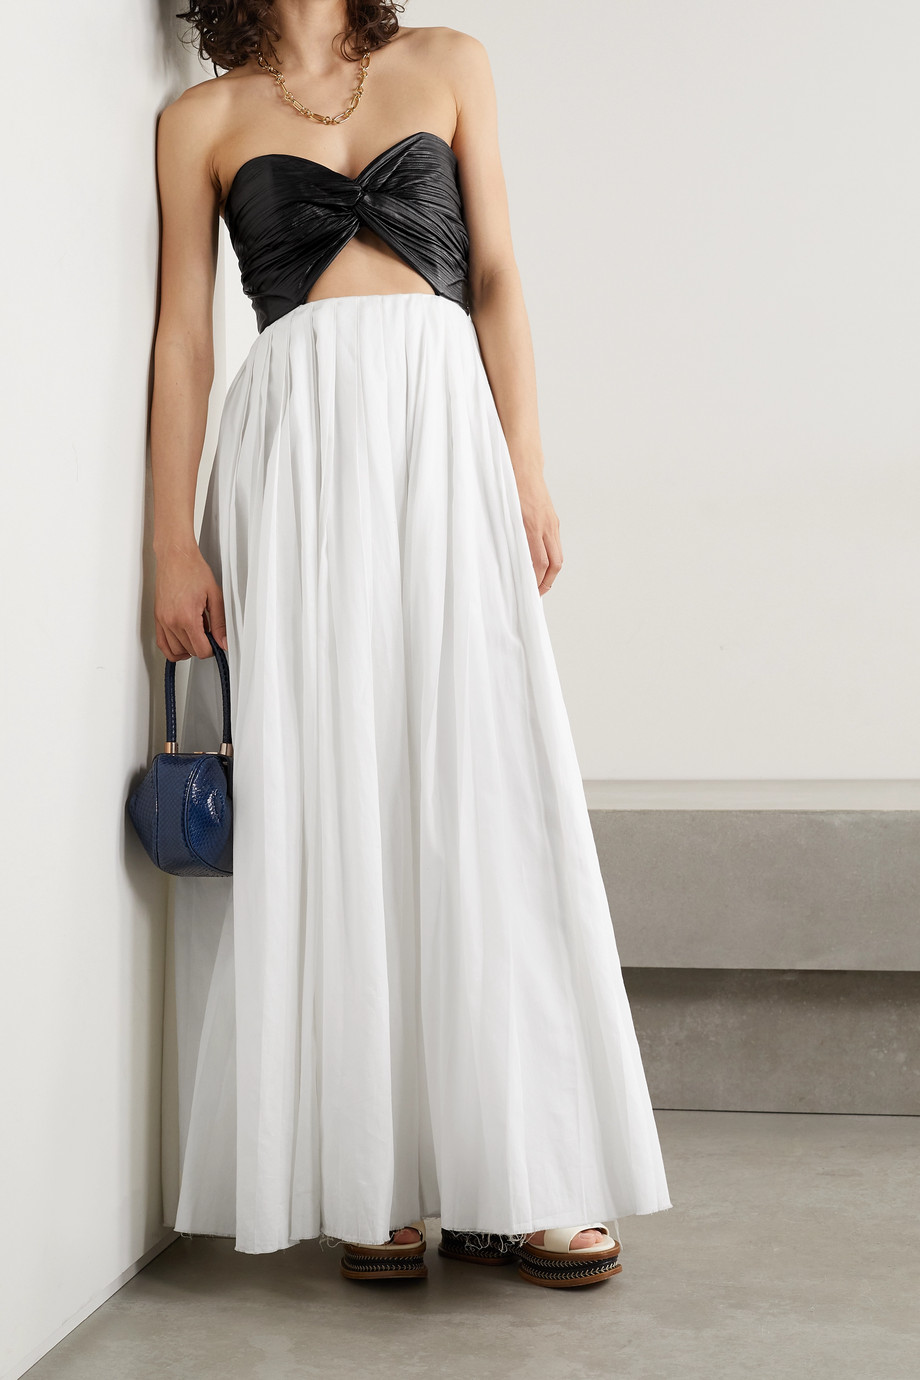 GABRIELA HEARST Greil cutout pleated leather and cotton-voile maxi dress